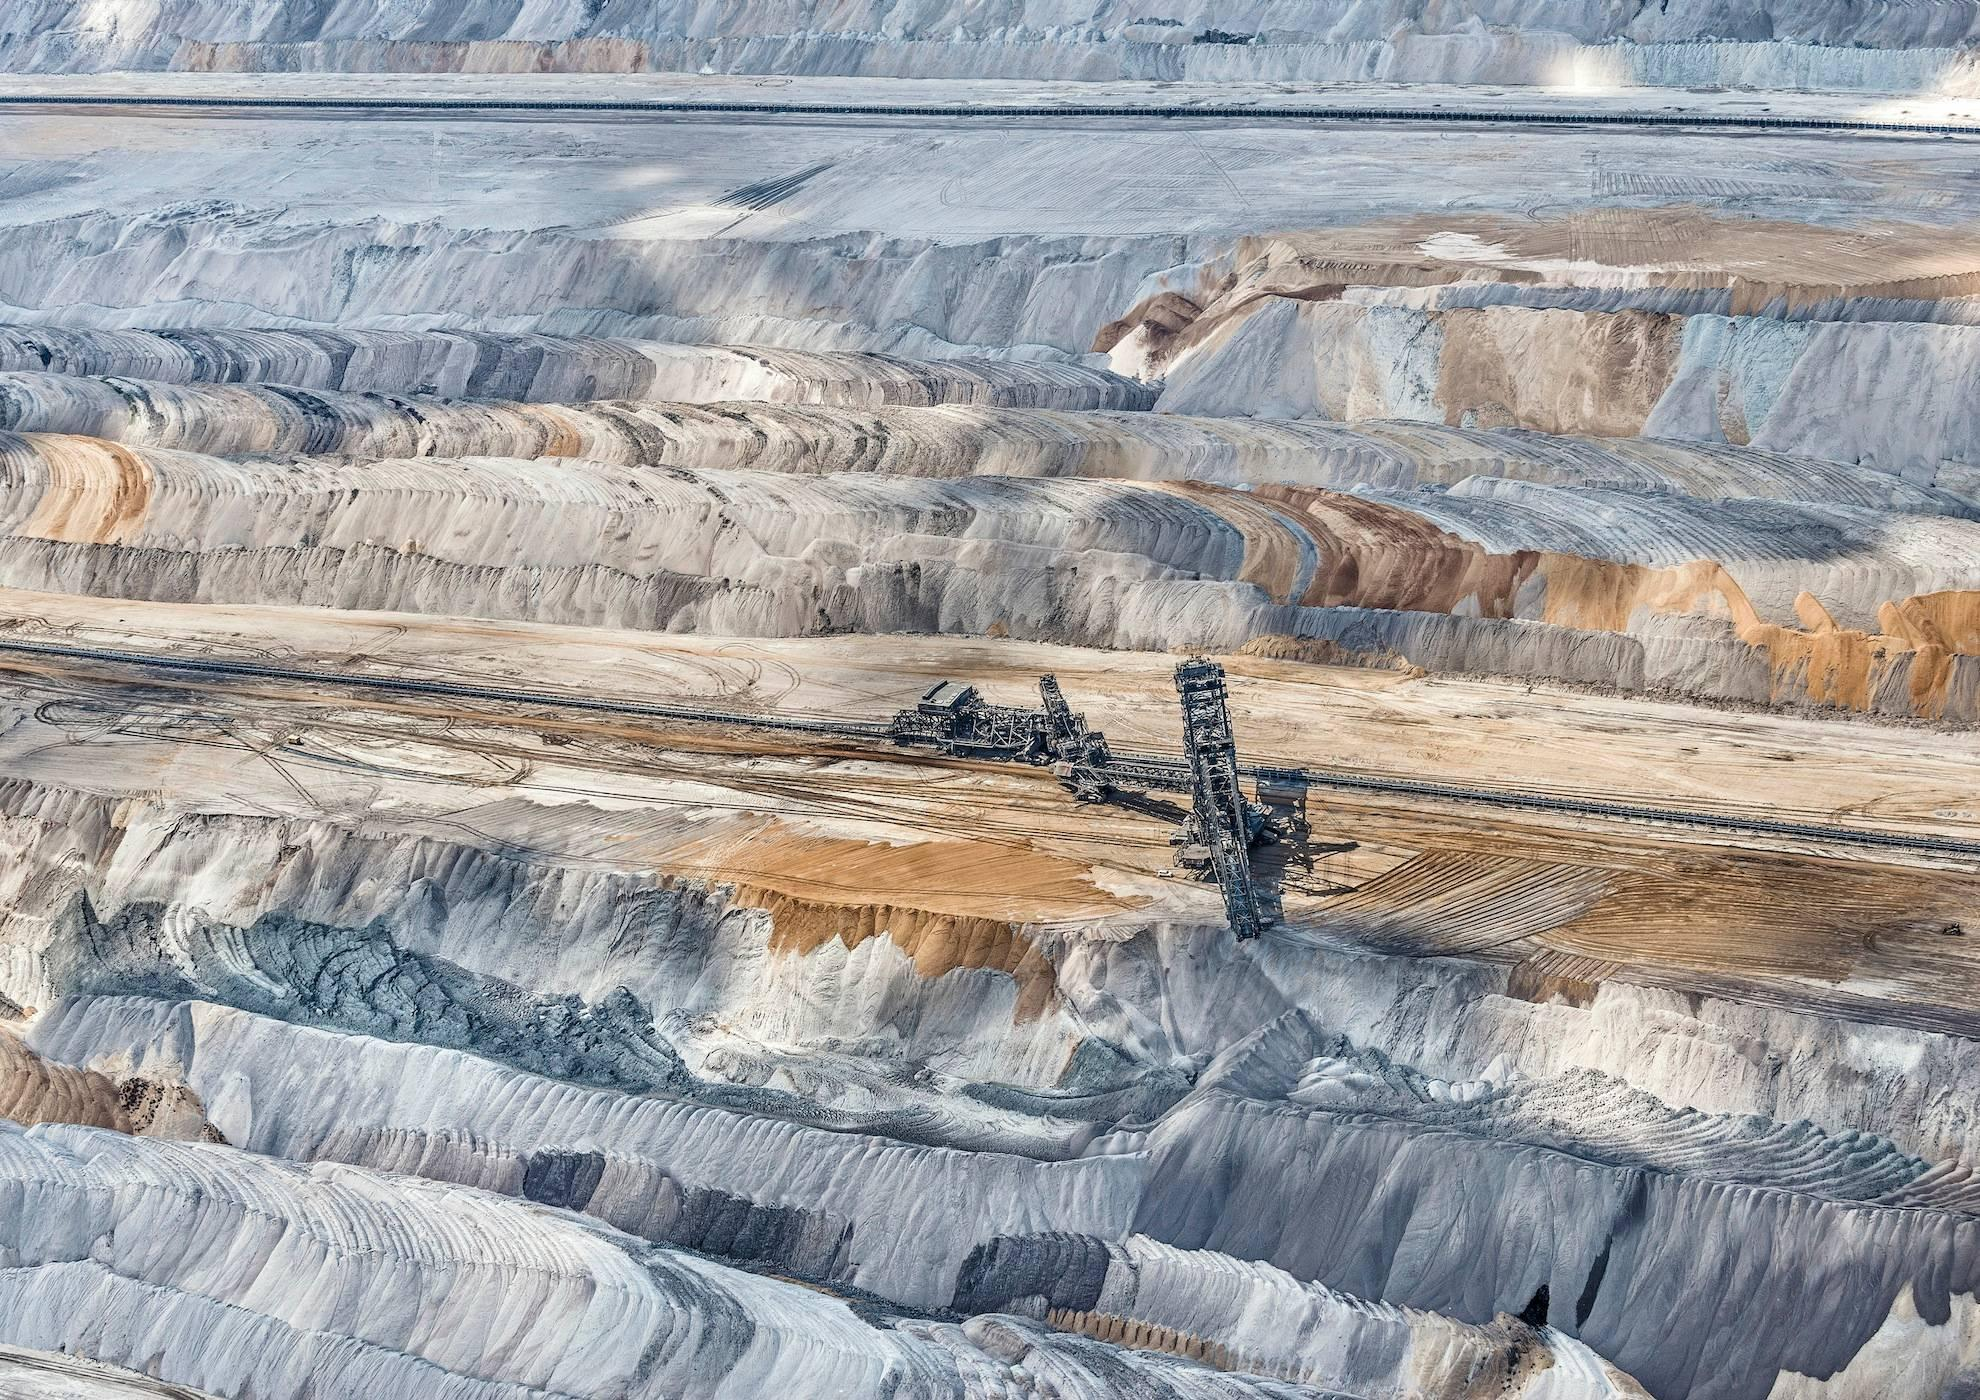 Coal Mine 2 (Germany), Aerial abstract photography